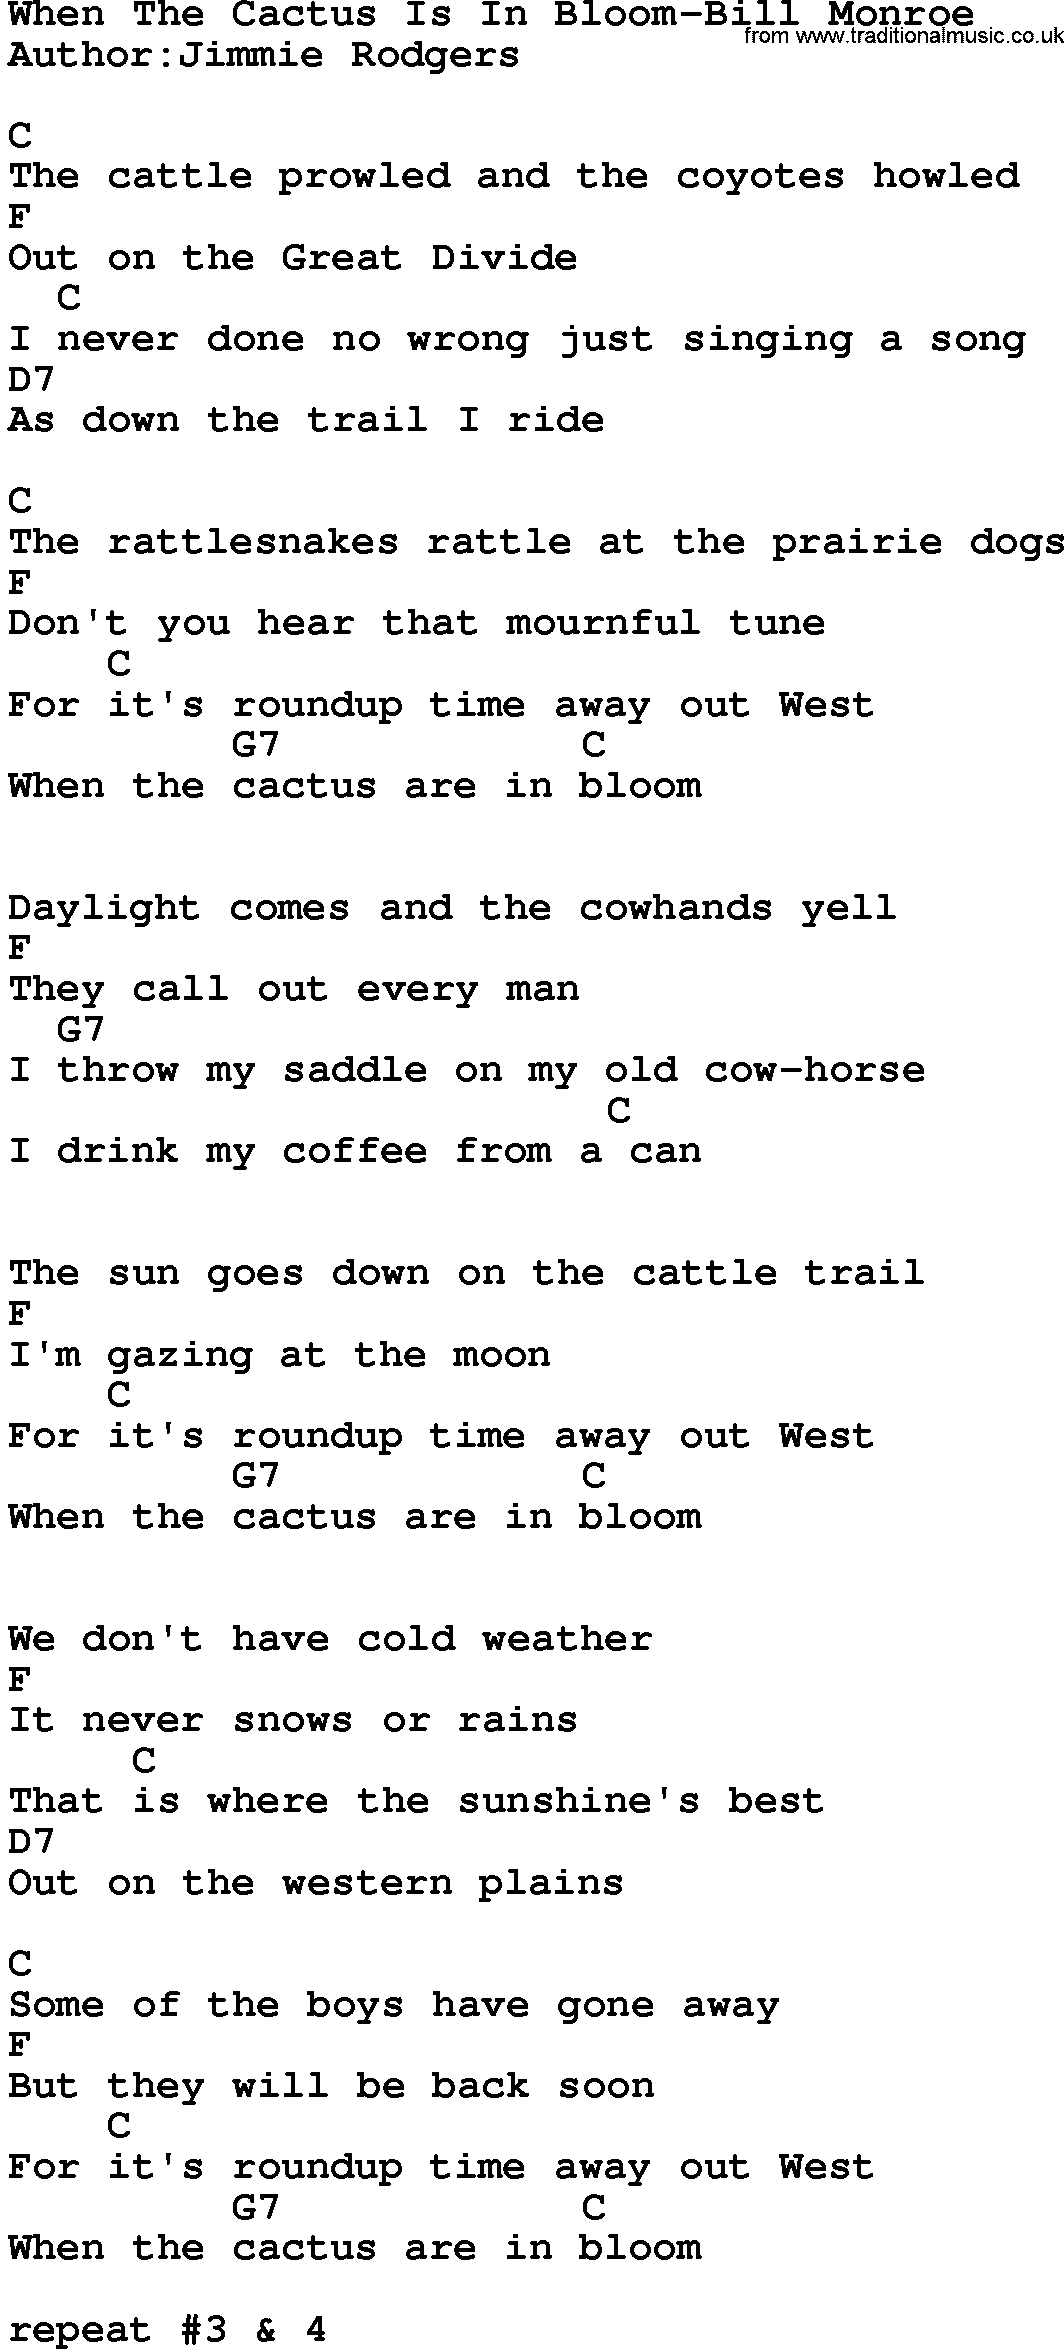 Country Musicwhen The Cactus Is In Bloom Bill Monroe Lyrics And Chords